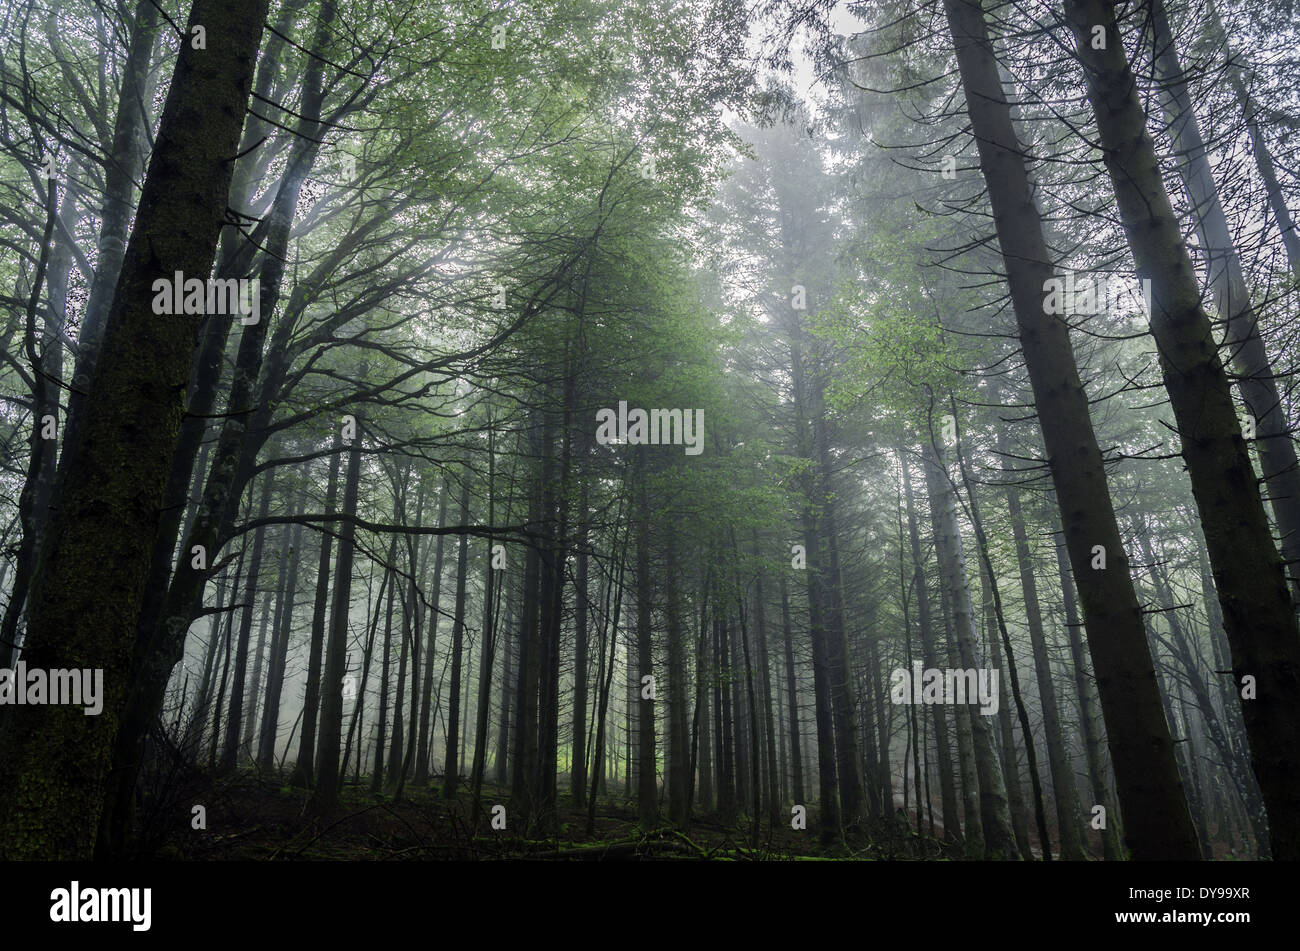 The dark forest - Stock Image